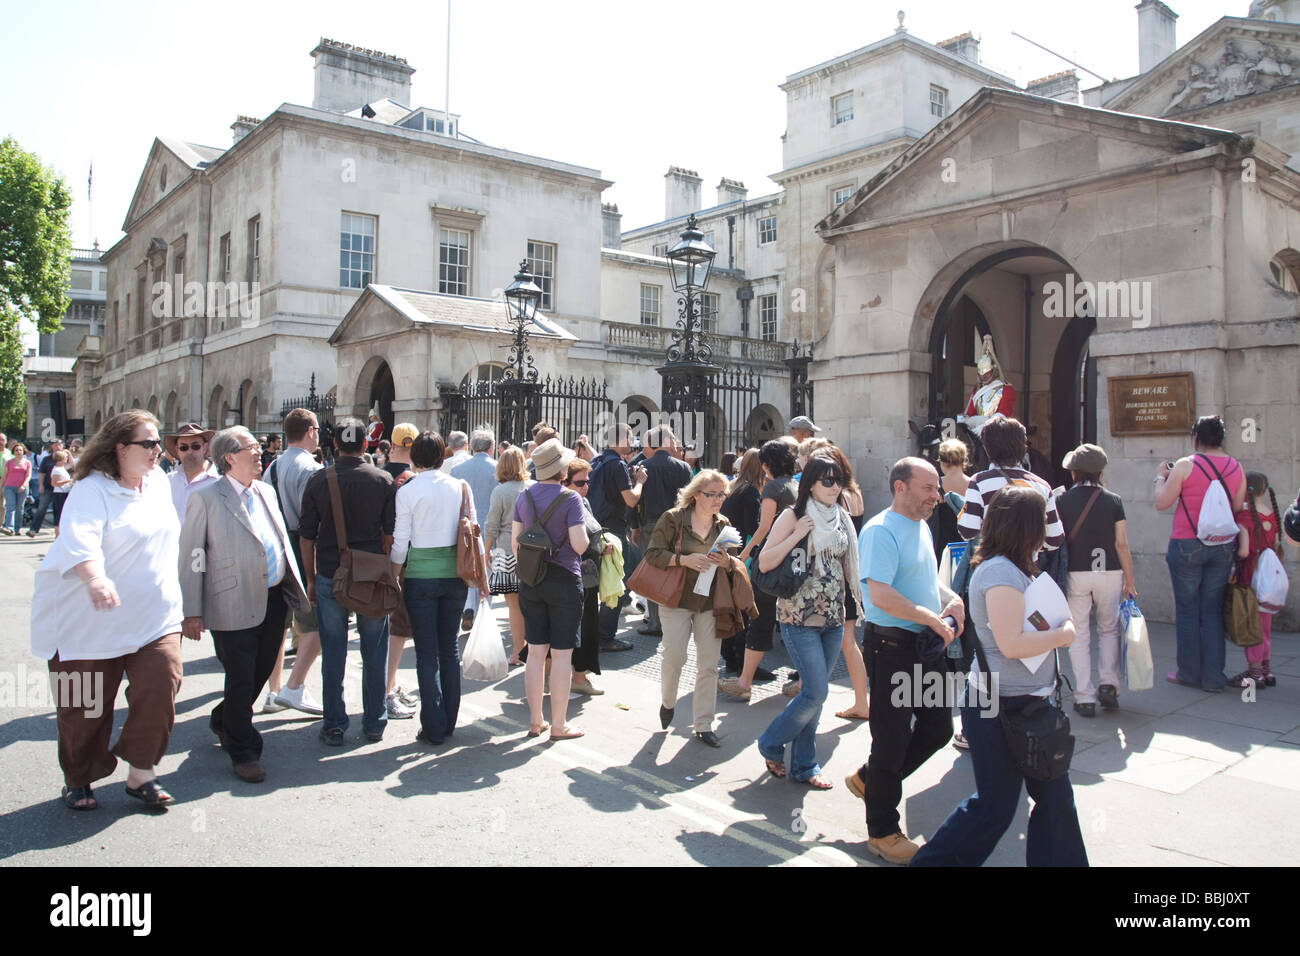 Tourists - Horse Guards Parade - Whitehall - London - Stock Image